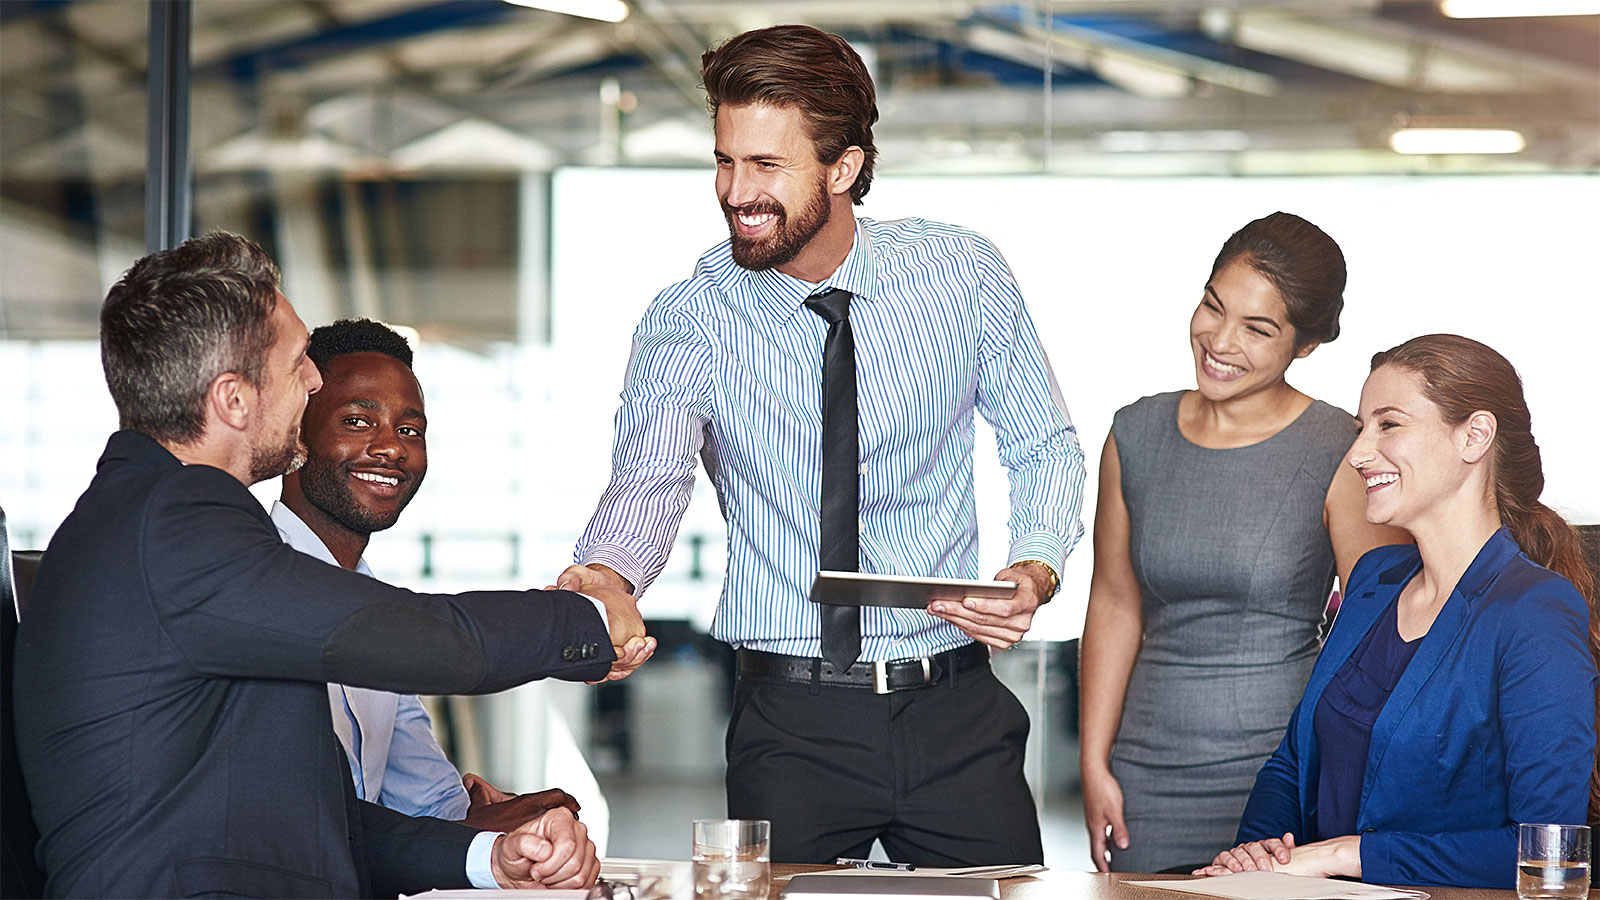 This undervalued and surprising virtue makes for the most effective leaders